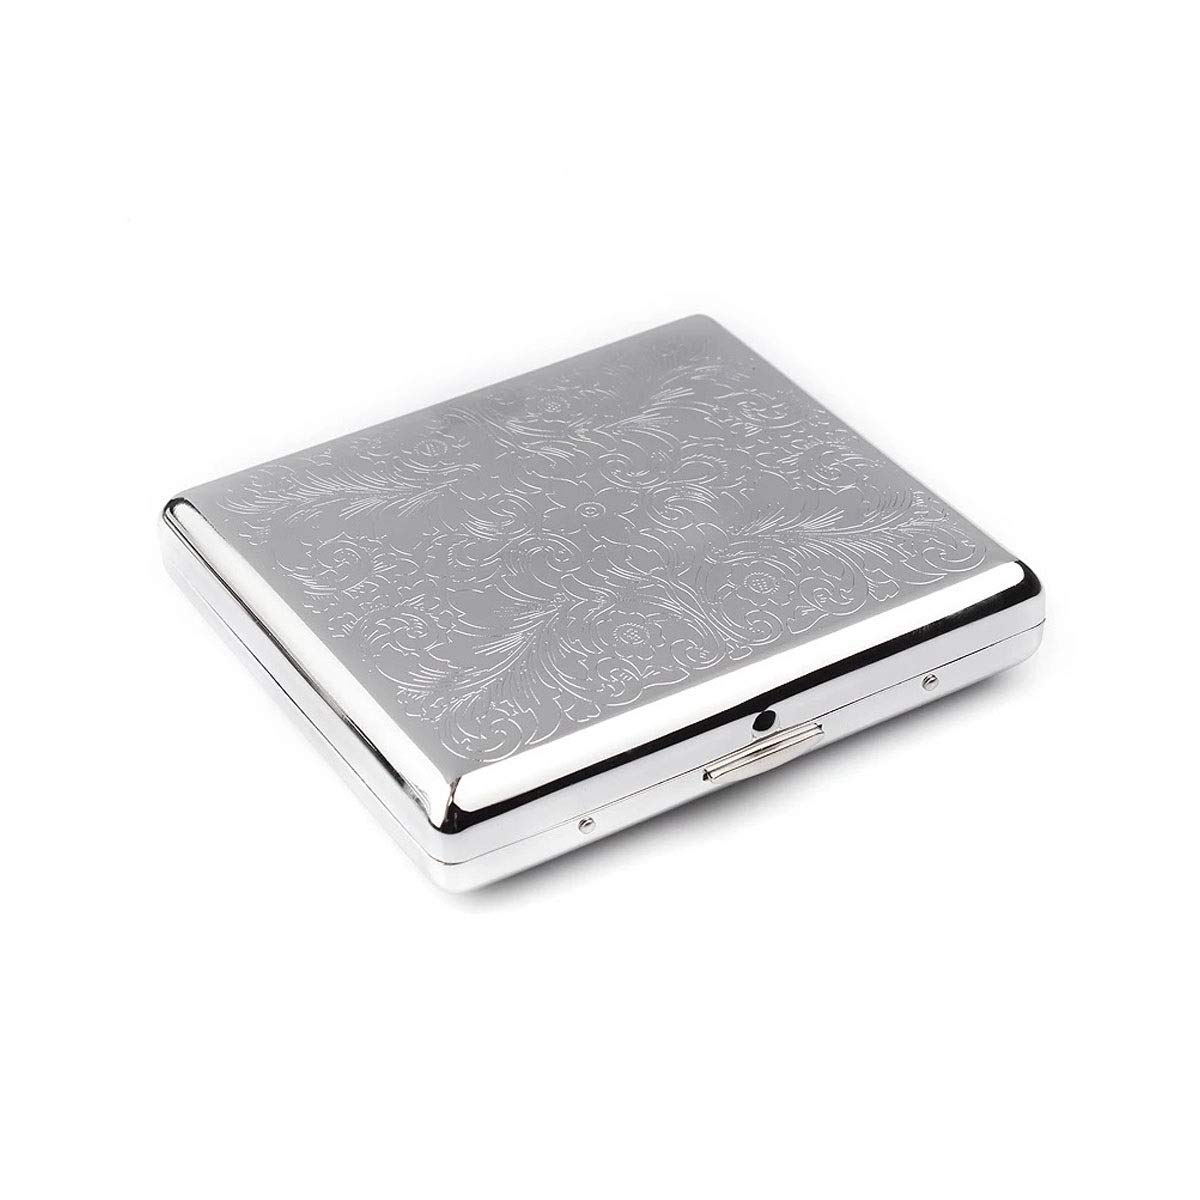 CHENTAOCS Cigarette Case, 20 Packs, Stainless Steel Personality Creative Automatic Metal Cigarette Case, Portable Men's Cigarette Case, Products (Color : Silver)